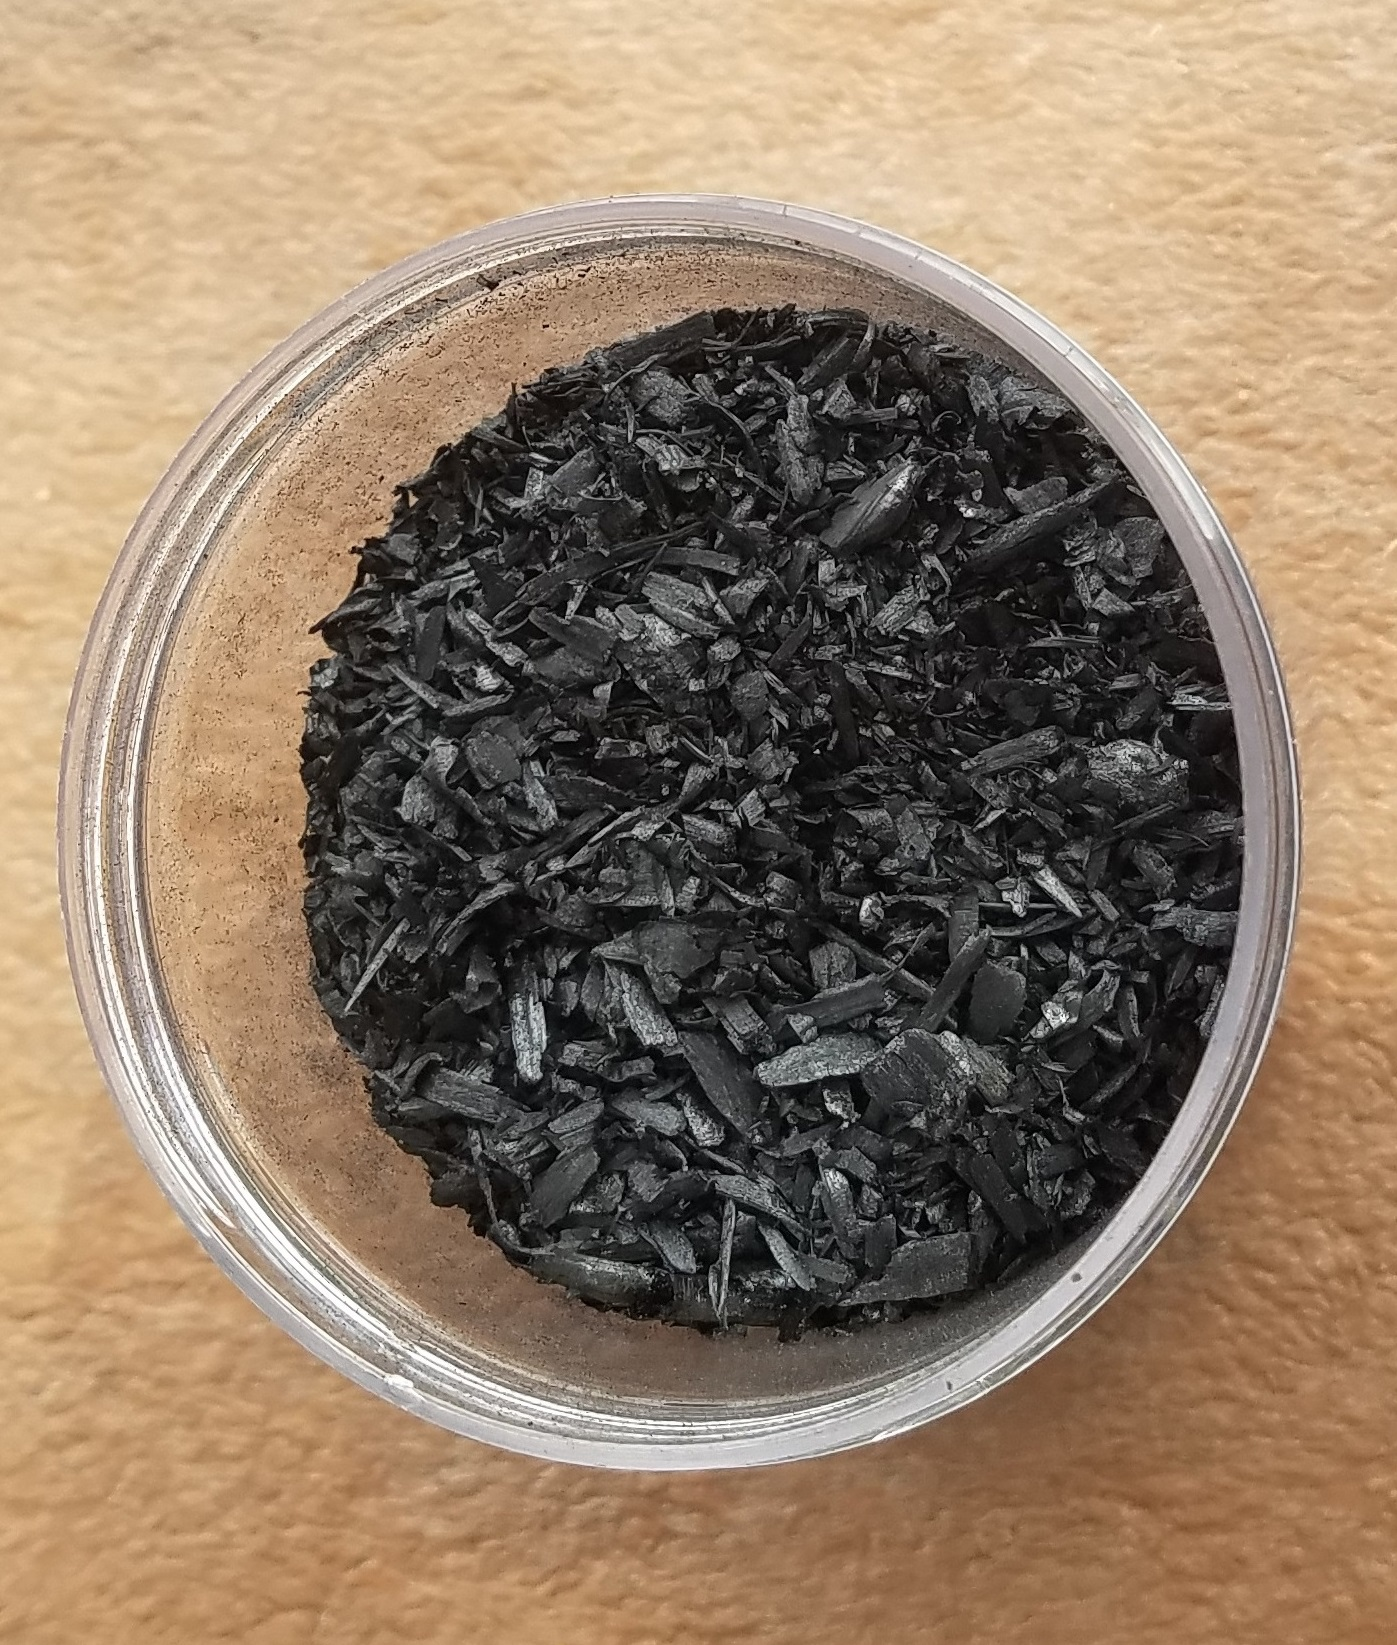 A small container with coarse biochar inside; small black colored pieces.